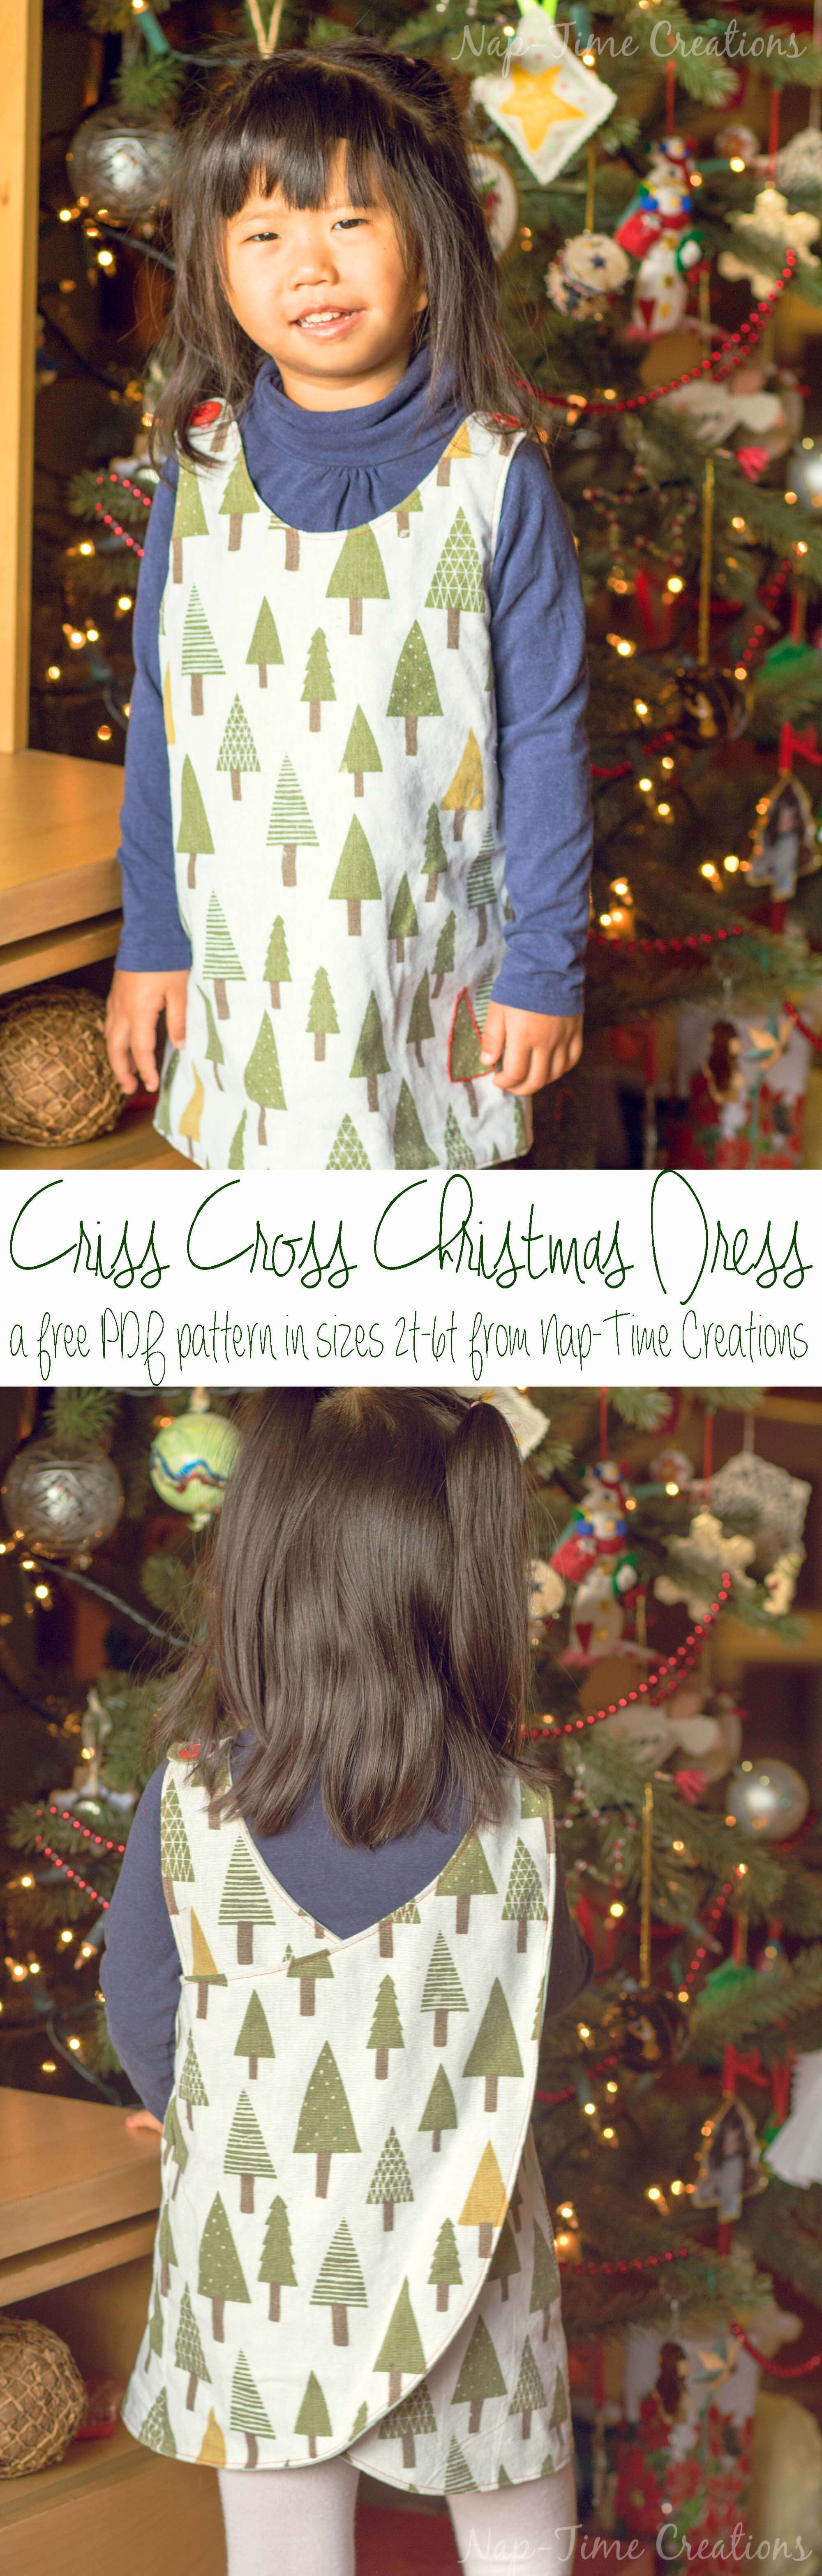 christmas jumper free pattern a-criss-cross-christmas-dress-from-nap-time-creations